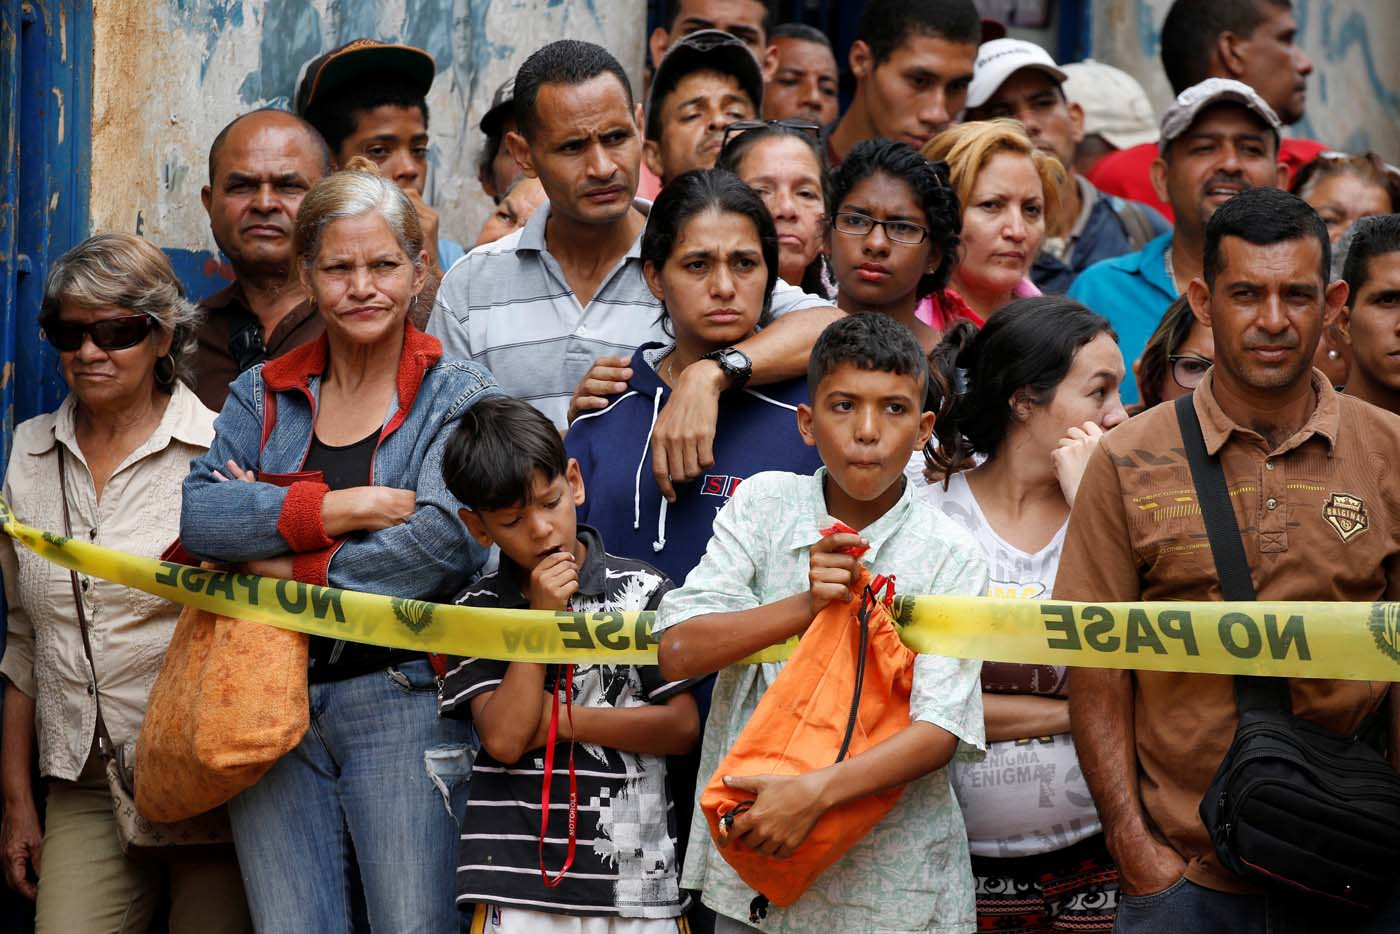 People look at police officers and criminal investigators while they collect evidence in front of a bakery, after it was looted in Caracas, Venezuela April 21, 2017. REUTERS/Carlos Garcia Rawlins TPX IMAGES OF THE DAY